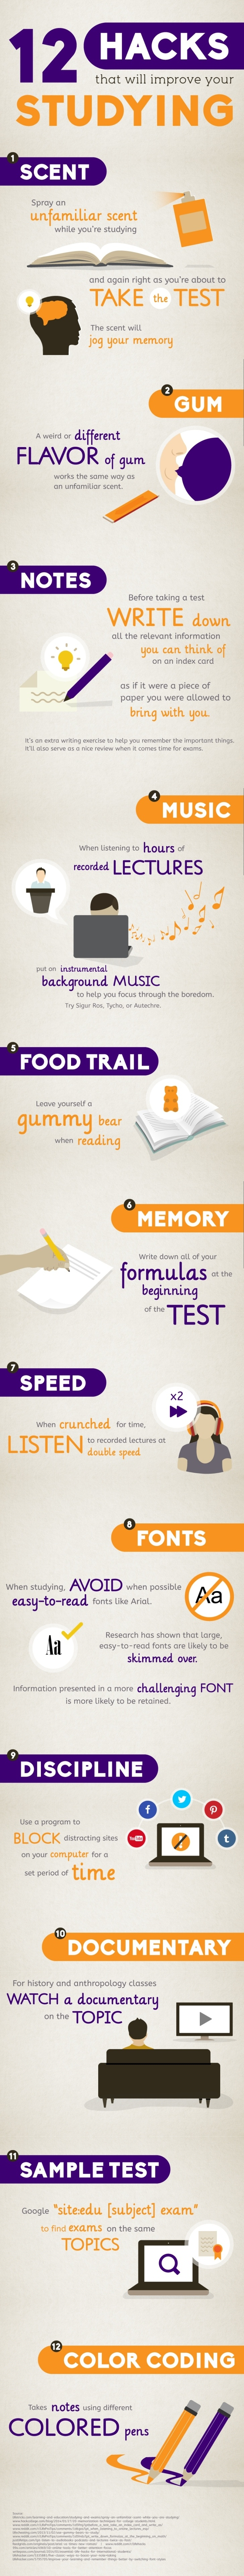 12 Hacks That Will Improve Your Studying Infographic